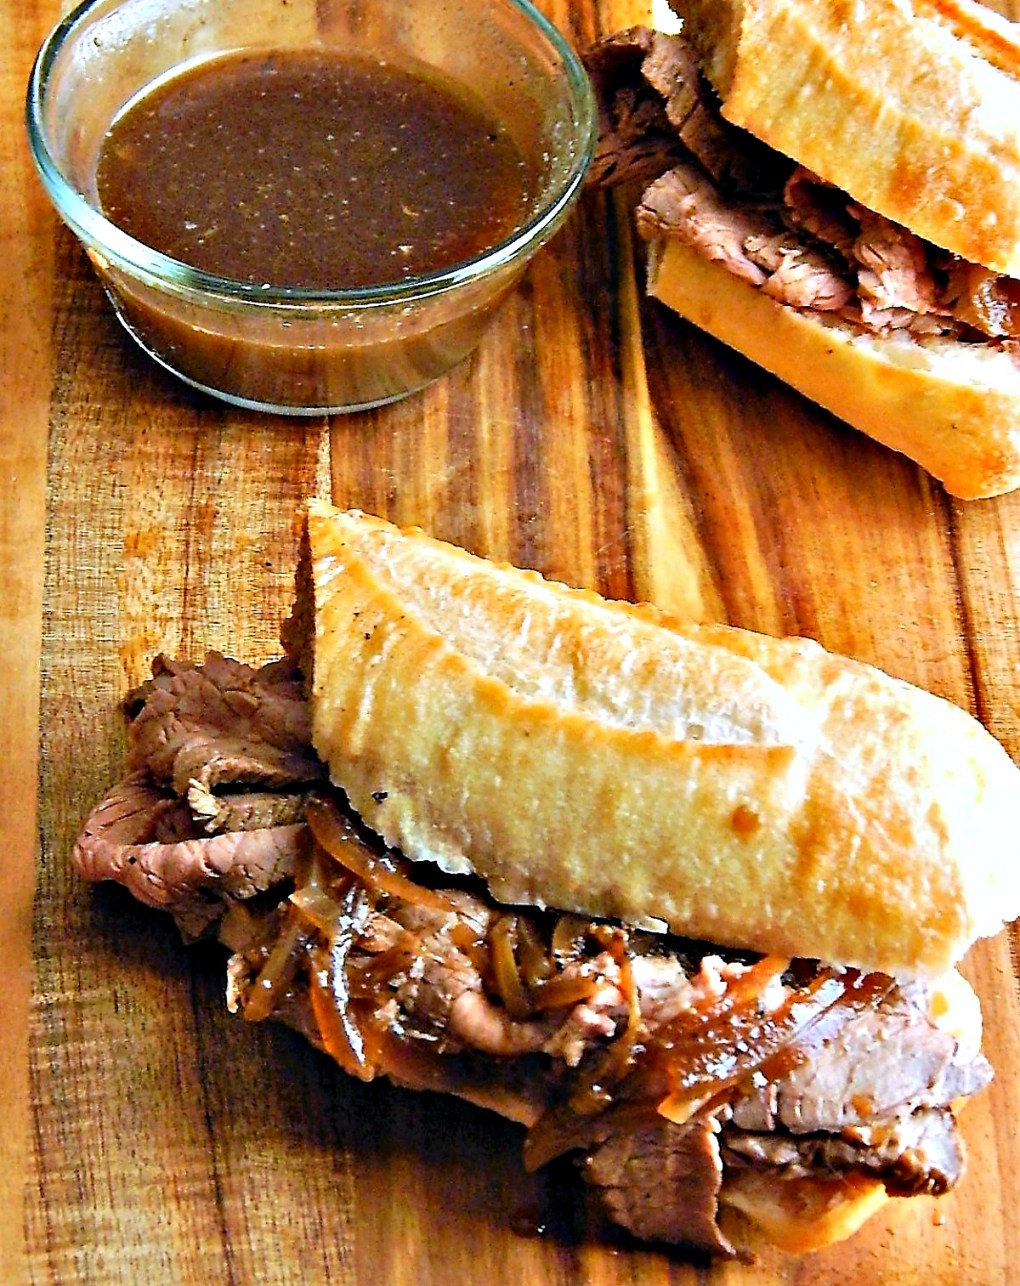 French Dip Sandwiches from 30 minute Instant Pot Roast Beef